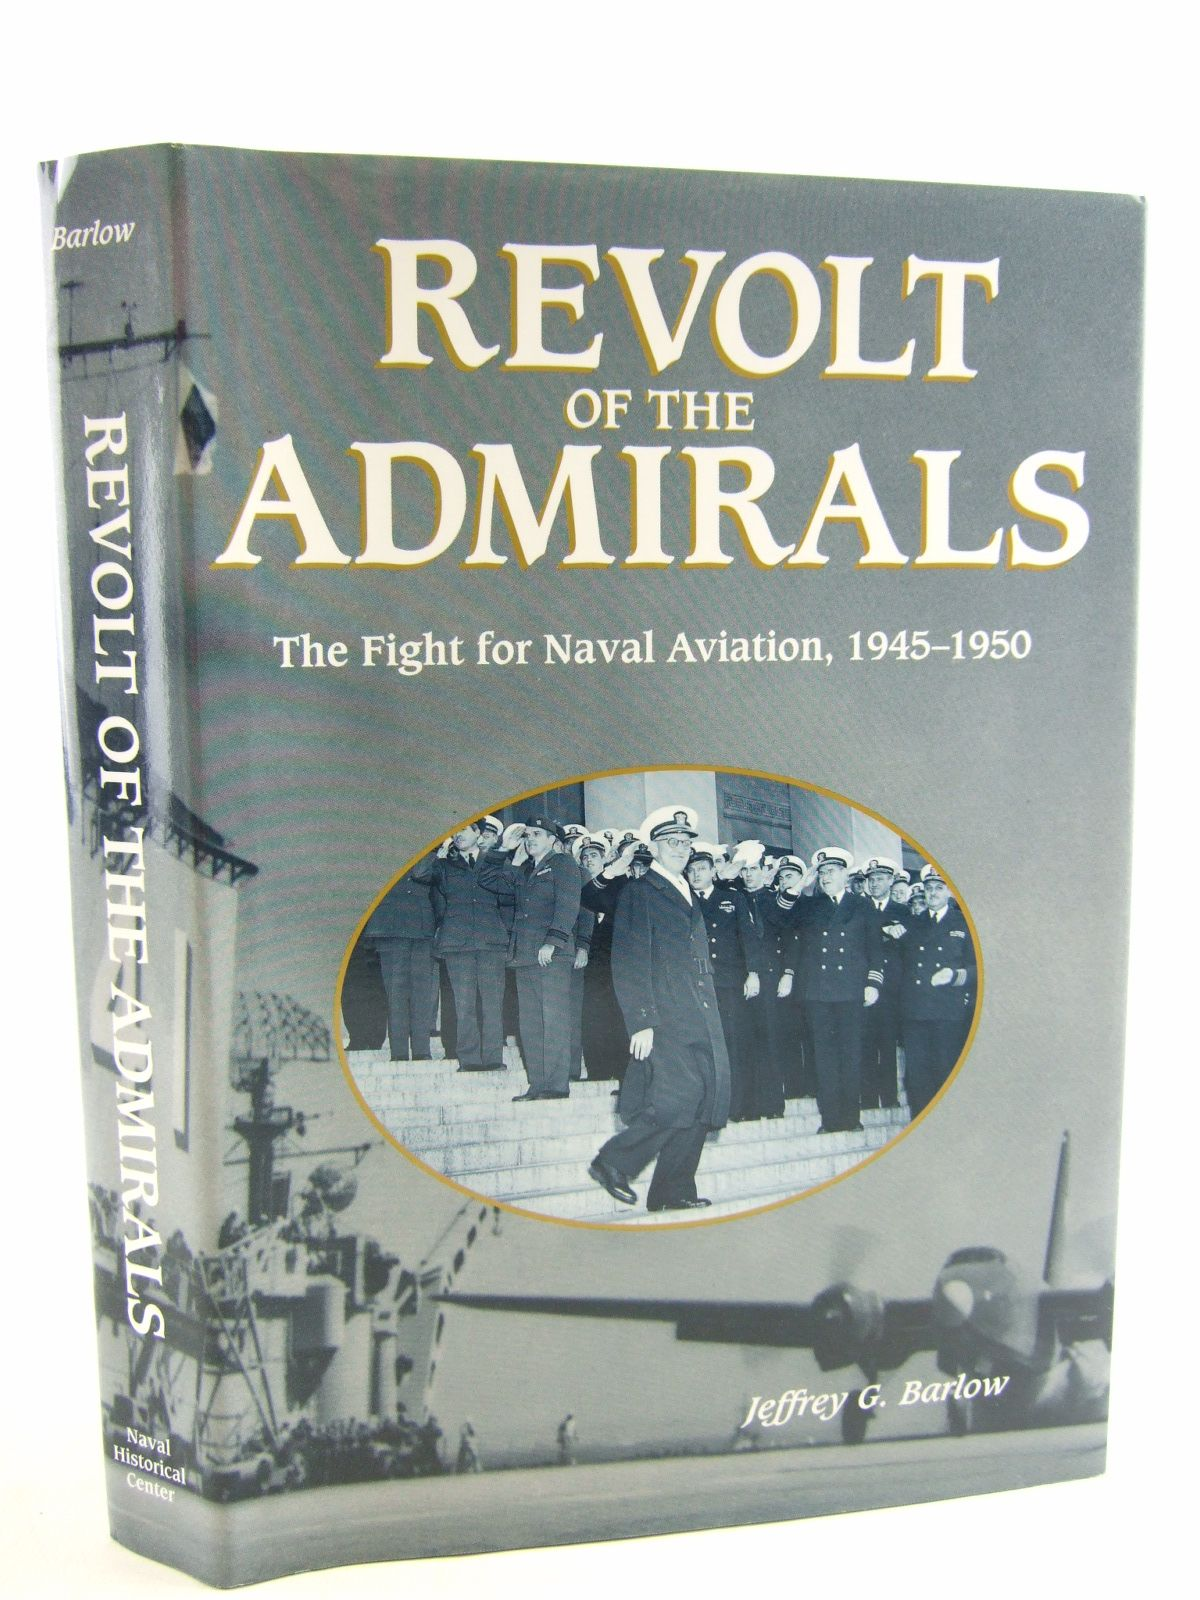 Photo of REVOLT OF THE ADMIRALS THE FIGHT FOR NAVAL AVIATION, 1945-1950 written by Barlow, Jeffrey G. published by Naval Historical Center (STOCK CODE: 1806409)  for sale by Stella & Rose's Books